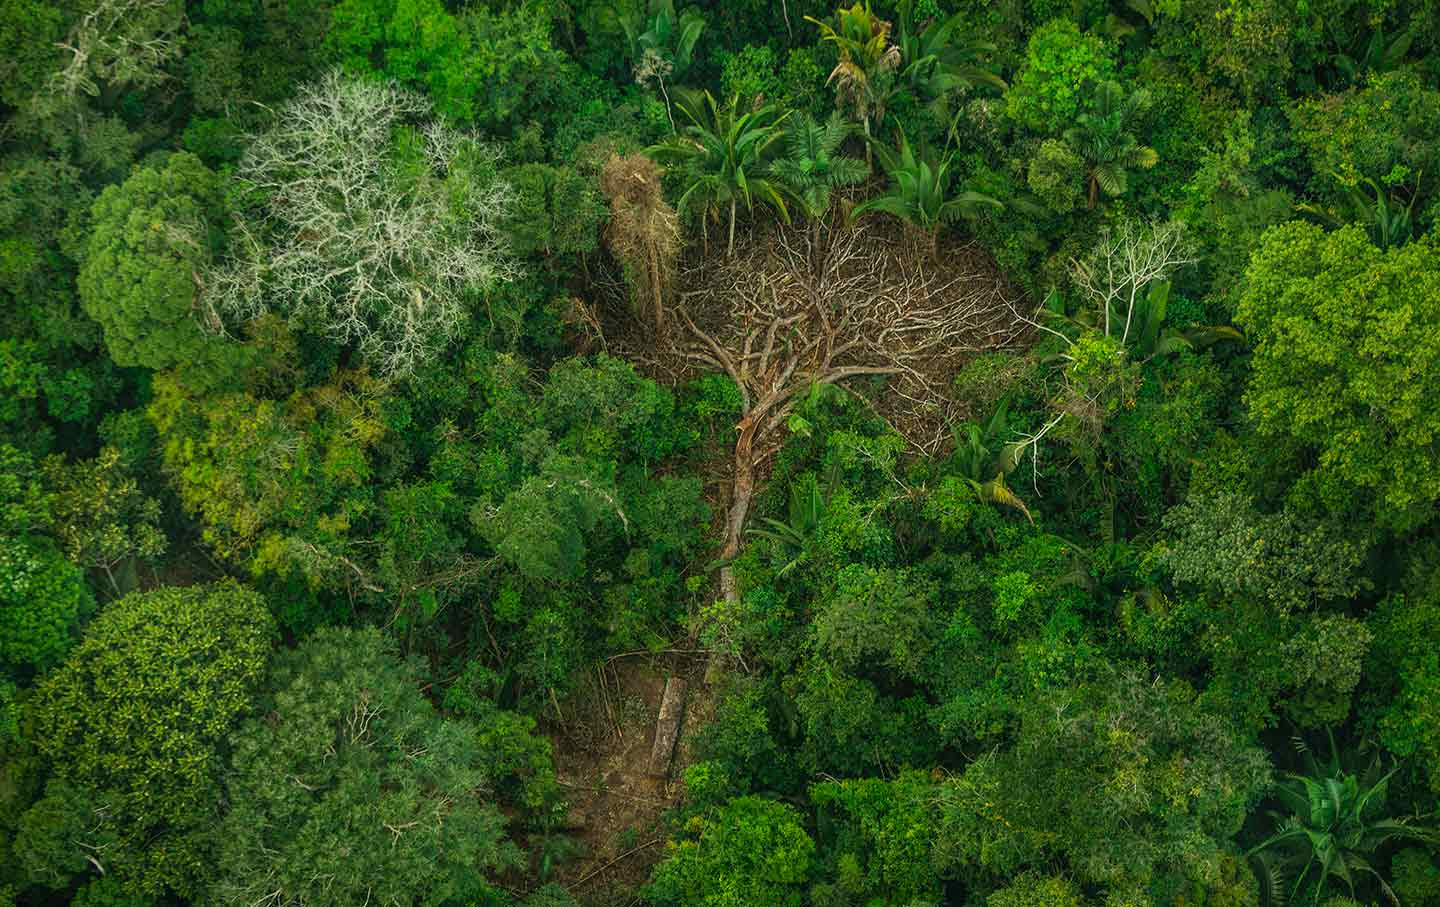 deforestation-indigenous-brazil-greenpeace-img